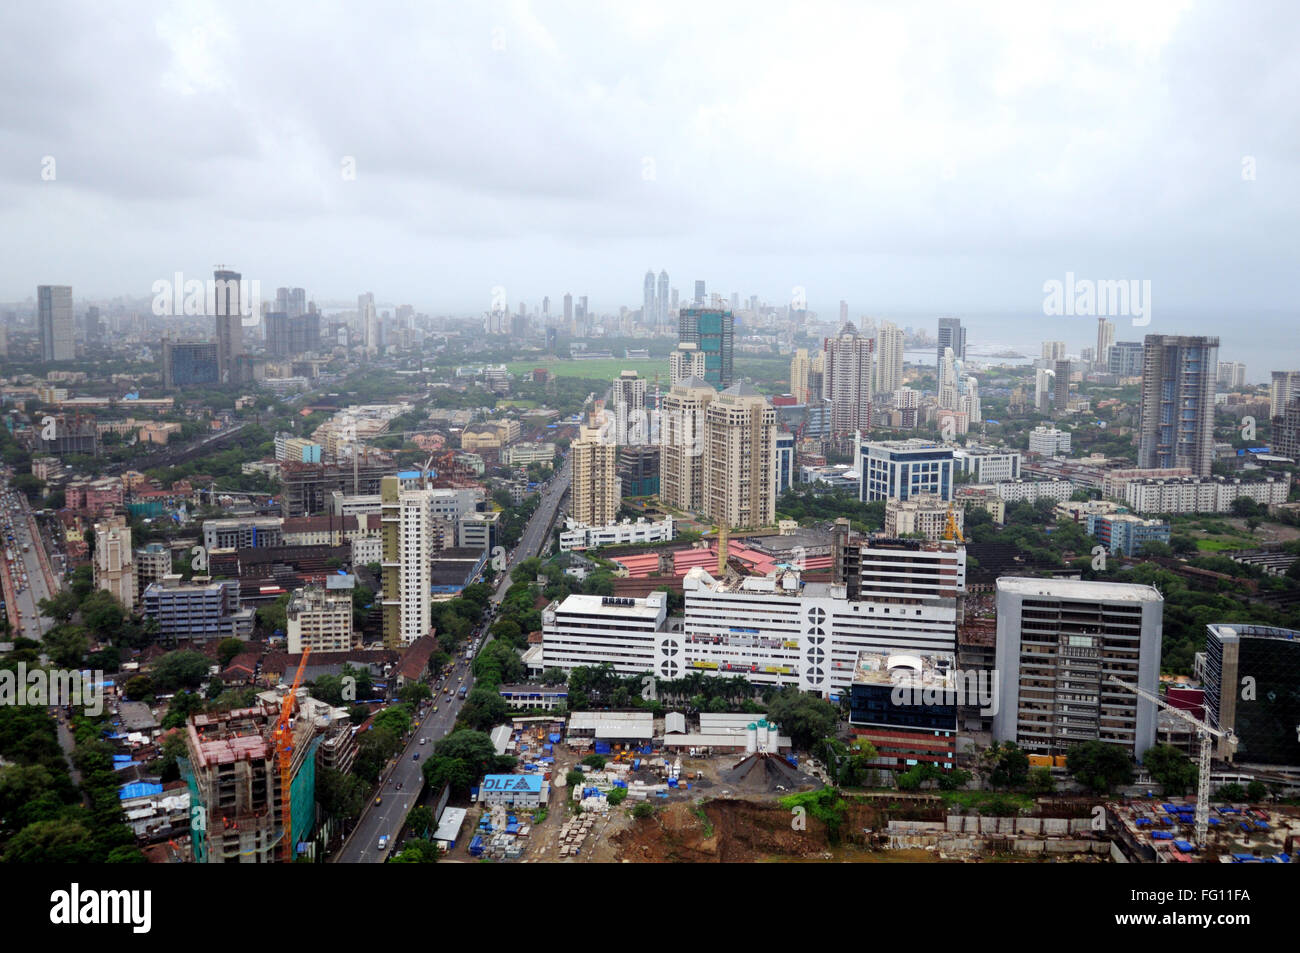 aerial view of lower parel with kamla mills dlf projects and peninsula corporate park ; Bombay Mumbai ; Maharashtra - Stock Image